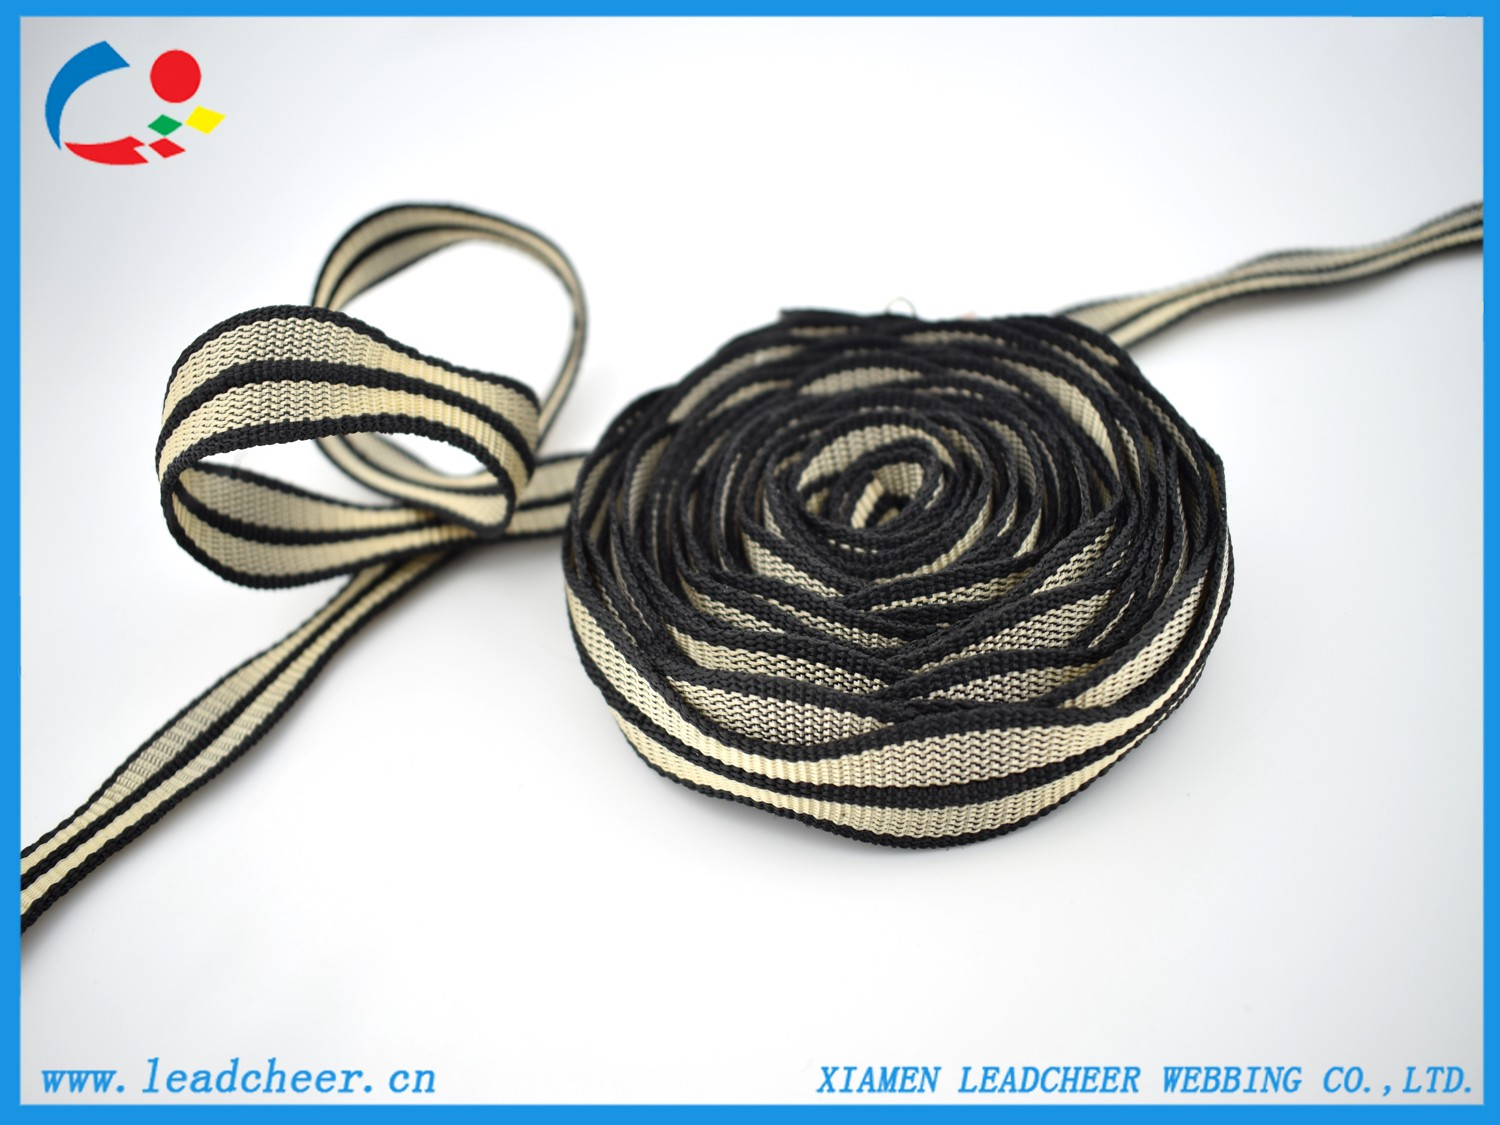 High quality Variable width strap for Bag Handbag Shoe Garment Quotes,China Variable width strap for Bag Handbag Shoe Garment Factory,Variable width strap for Bag Handbag Shoe Garment Purchasing